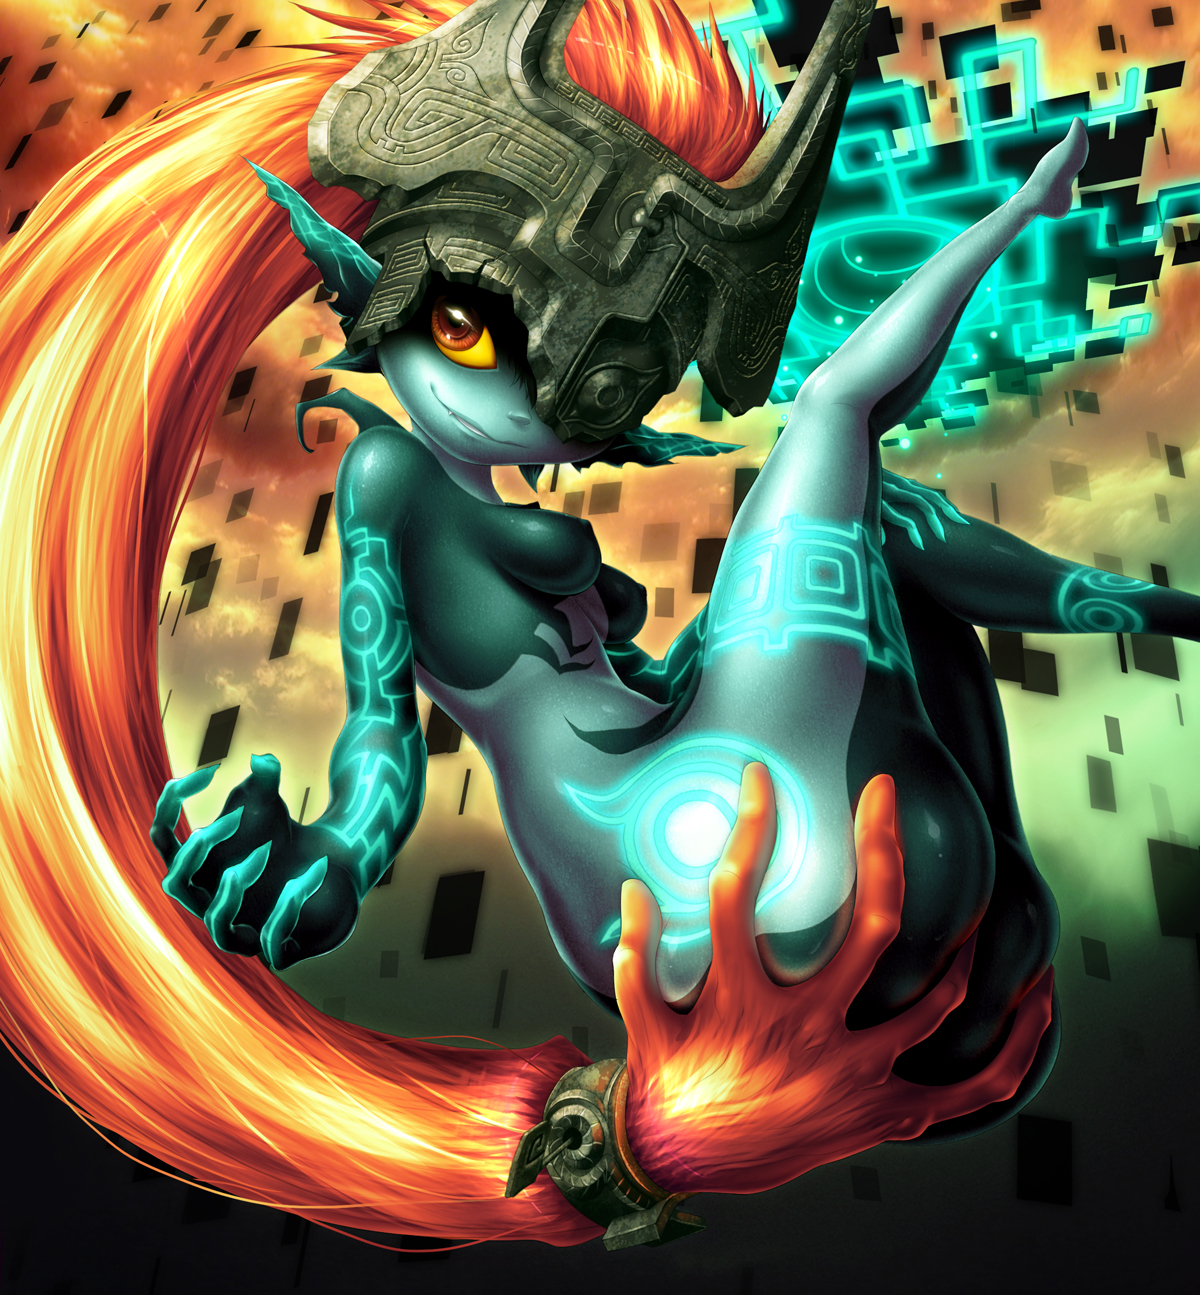 Handful of Midna by Yuqoi